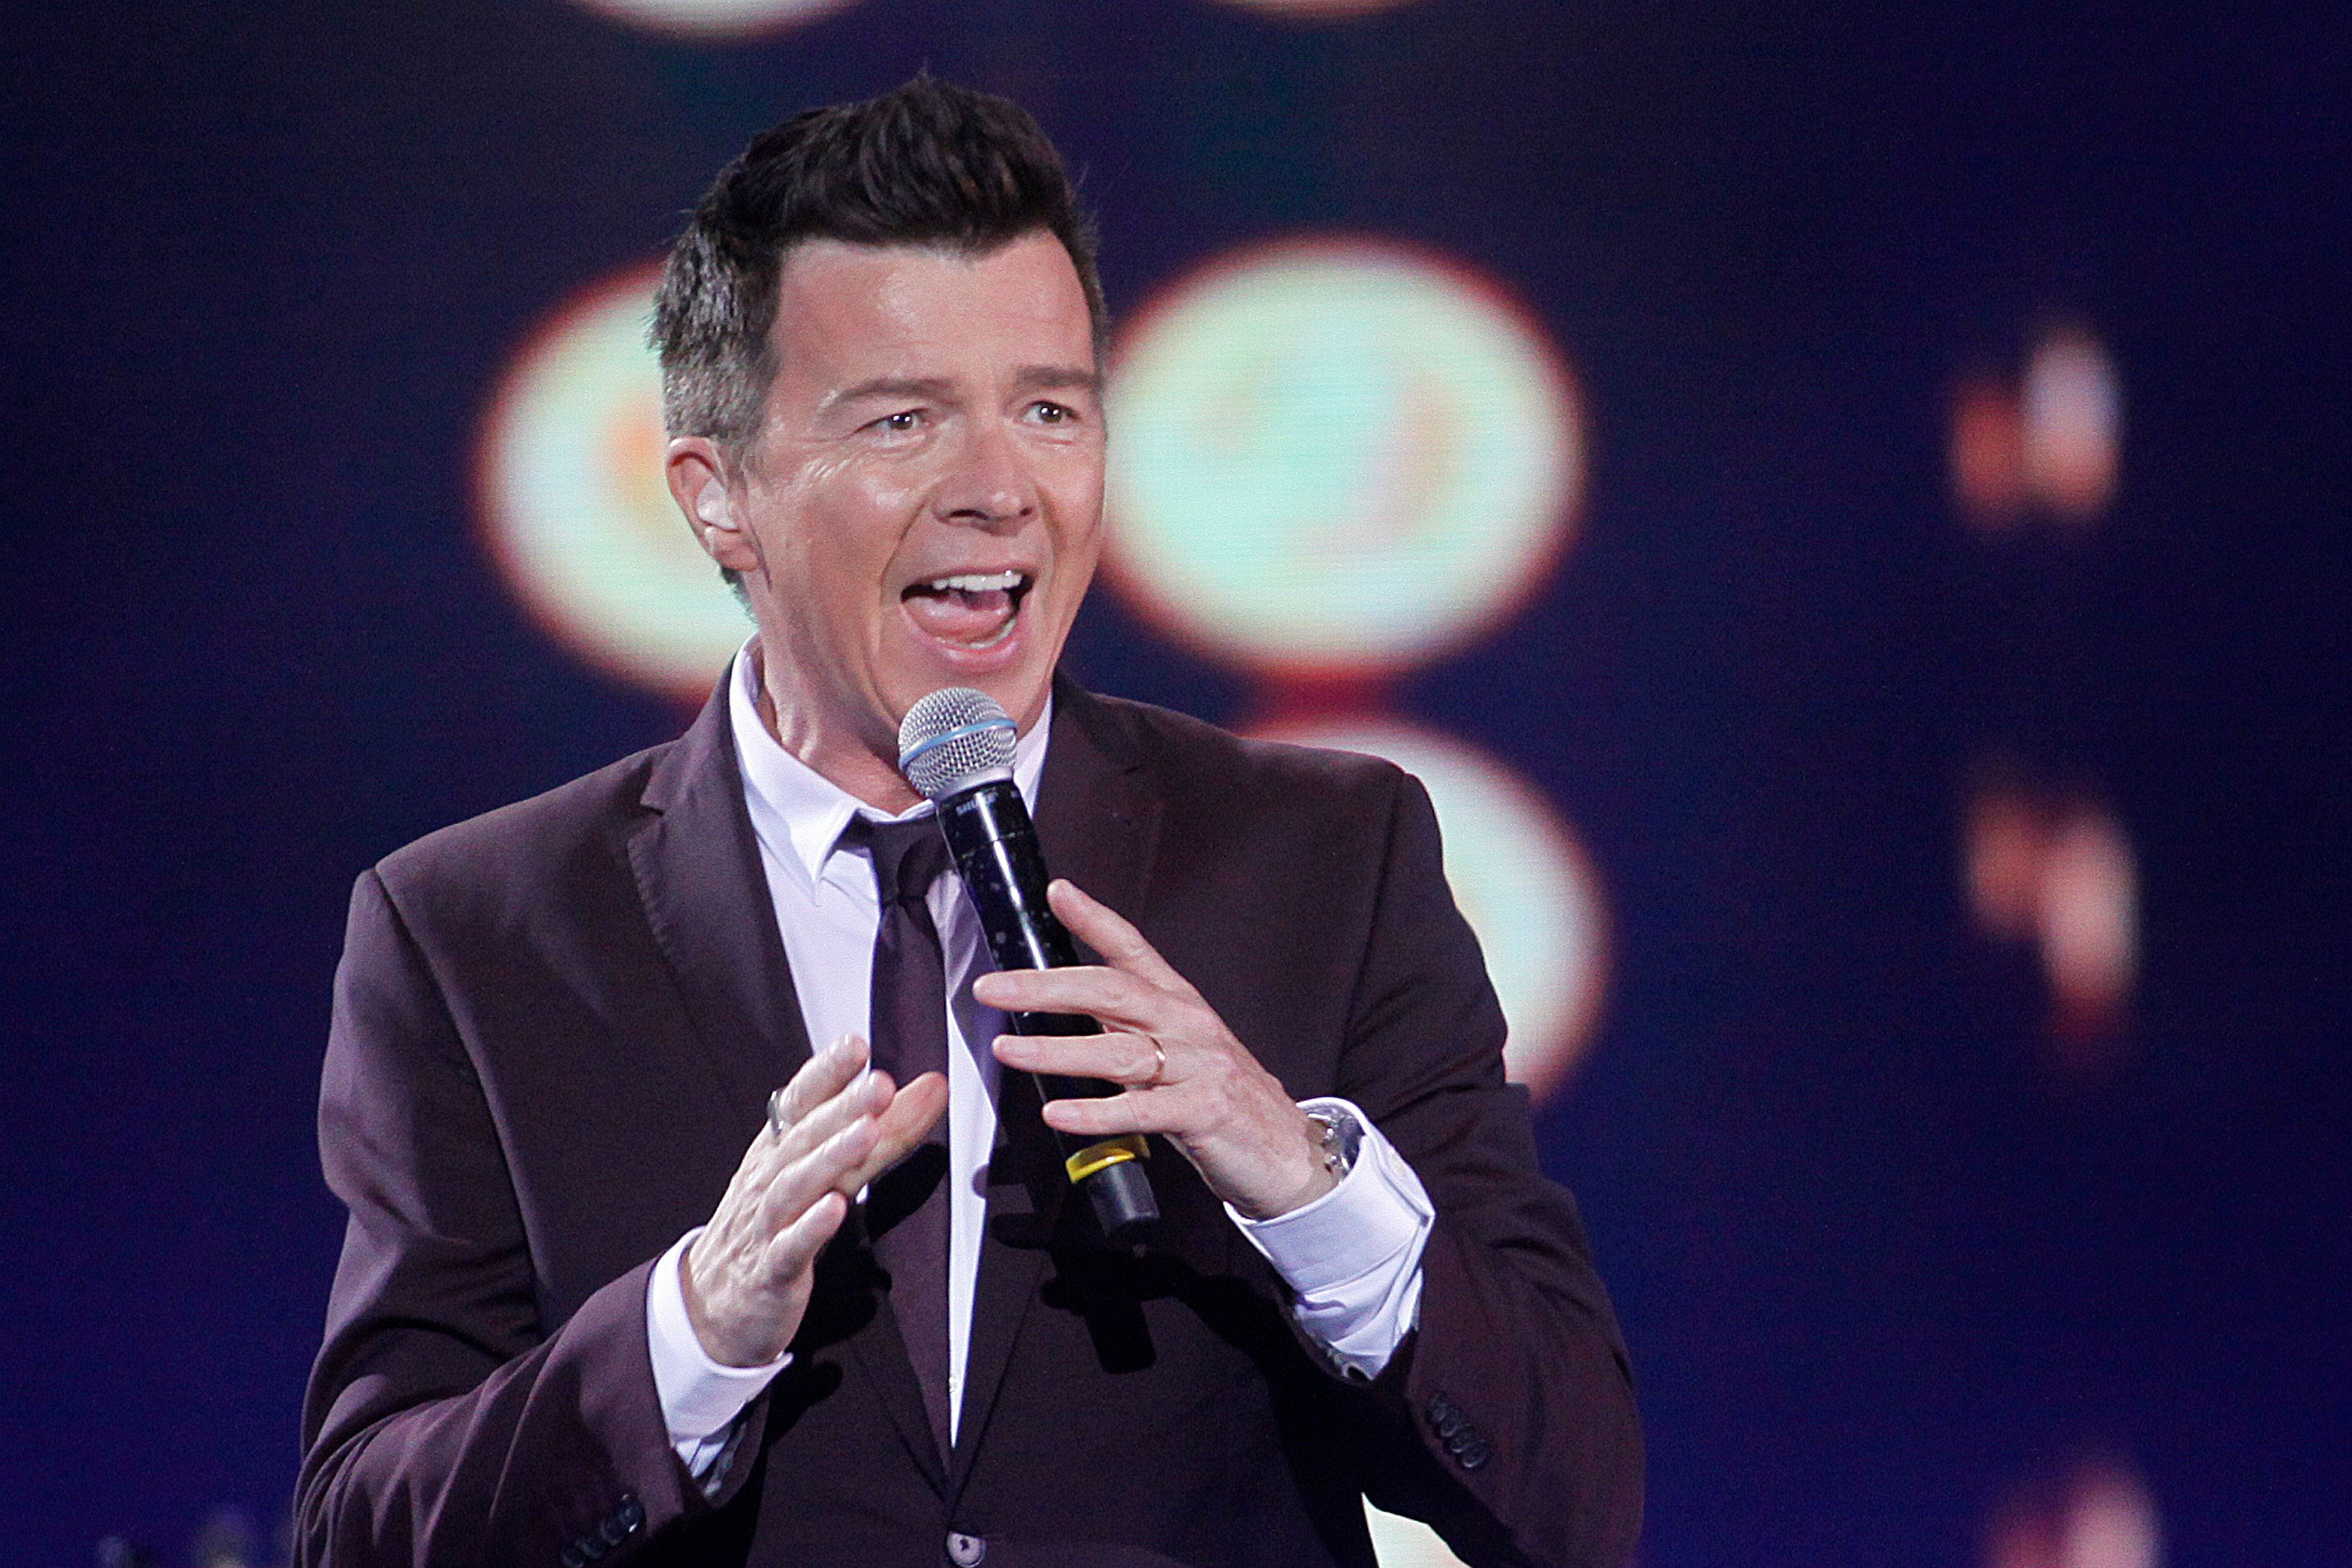 British singer Rick Astley performs during at the 57th of the song festival in Vina del Mar, Chile, on February 25, 2016.  / AFP / ATON CHILE / LUIS COLLAO        (Photo credit should read LUIS COLLAO/AFP/Getty Images)